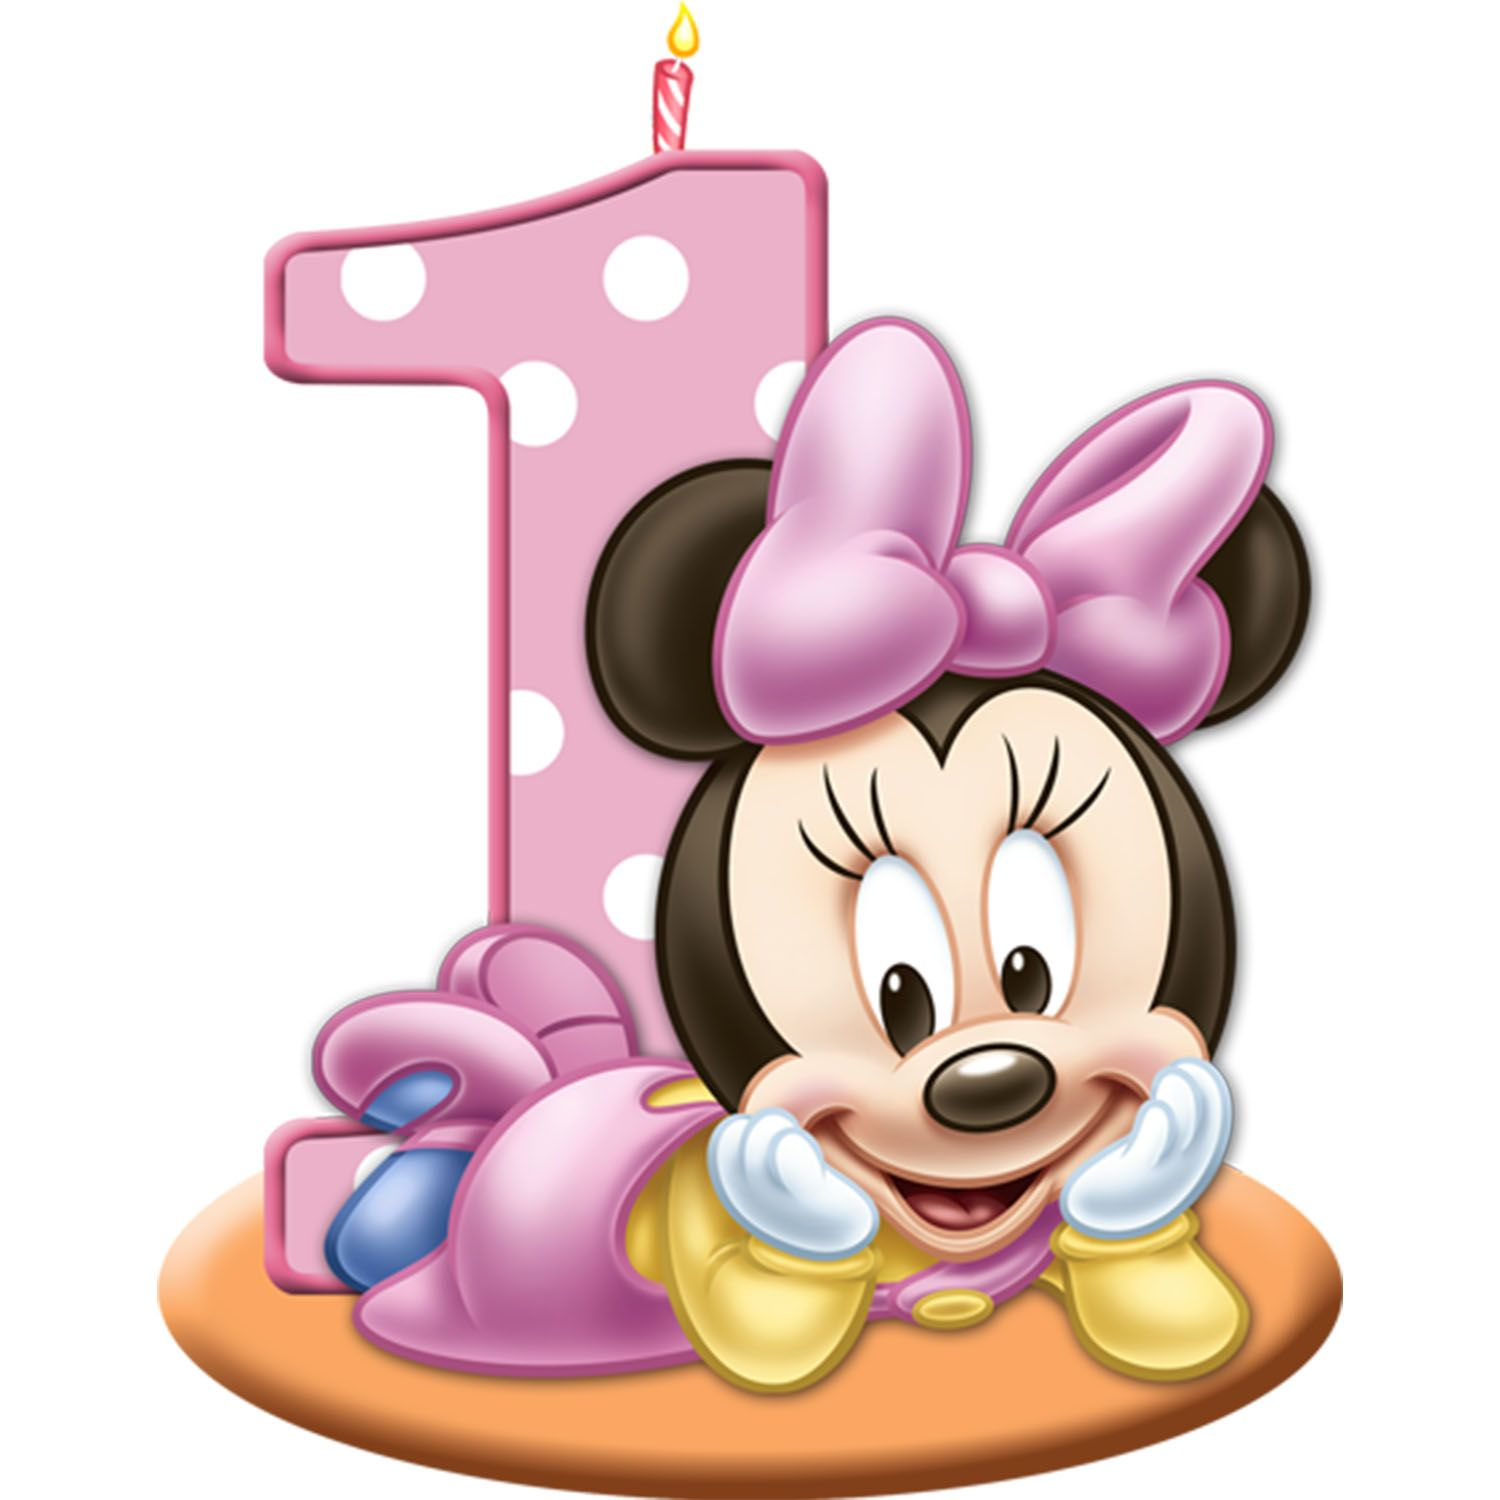 Clipart blue kid socks with minnie mouse png free download Minnie Mouse First Birthday Cake - Printable Coloring Pages and ... png free download